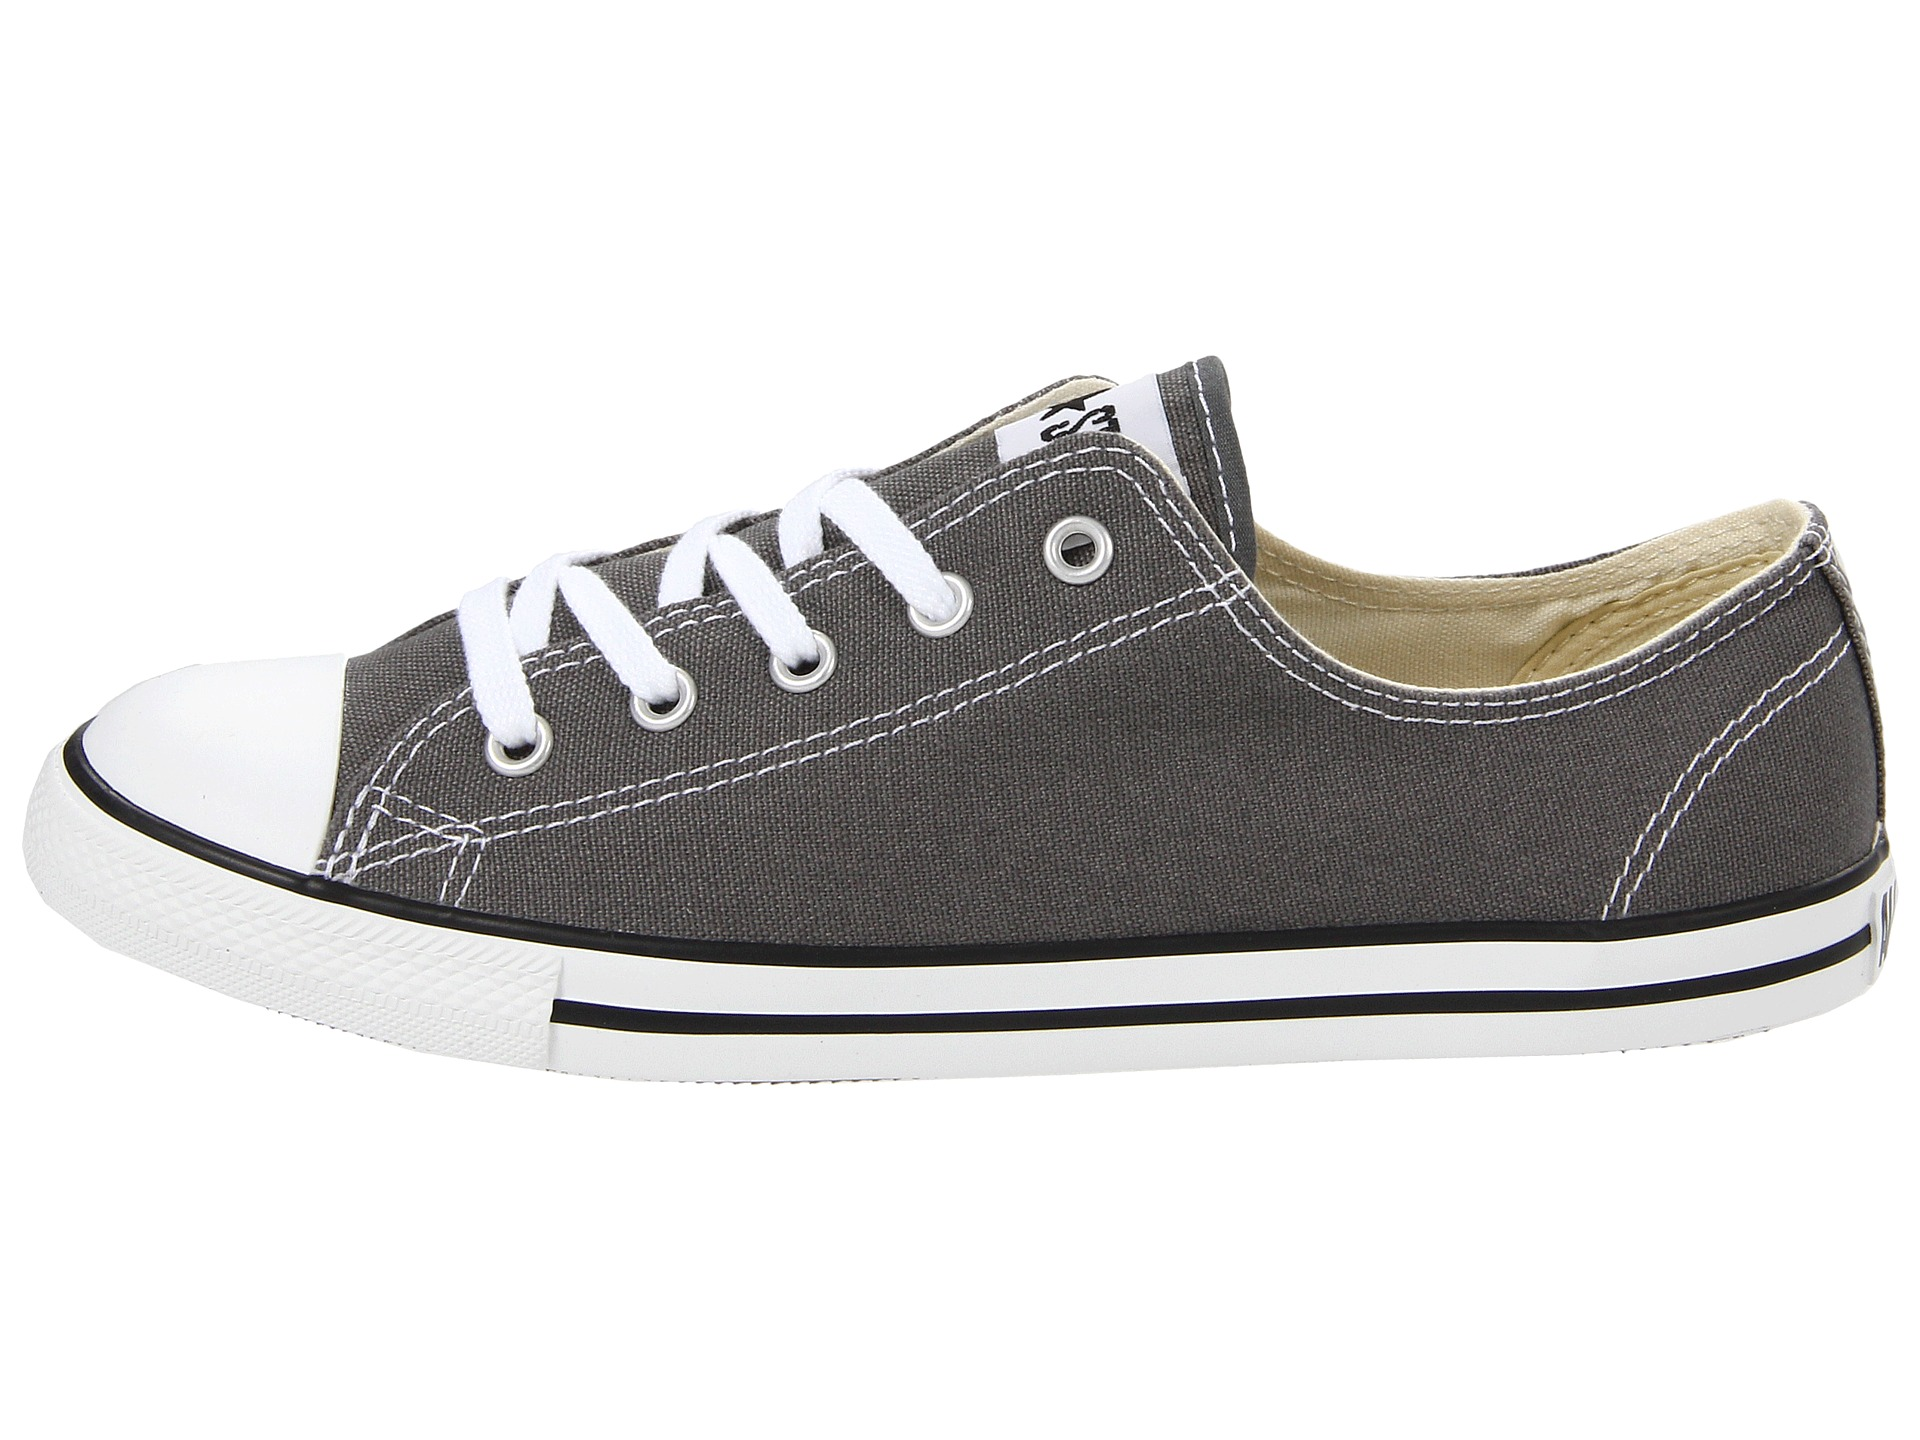 chuck taylor all star dainty reviews of movies